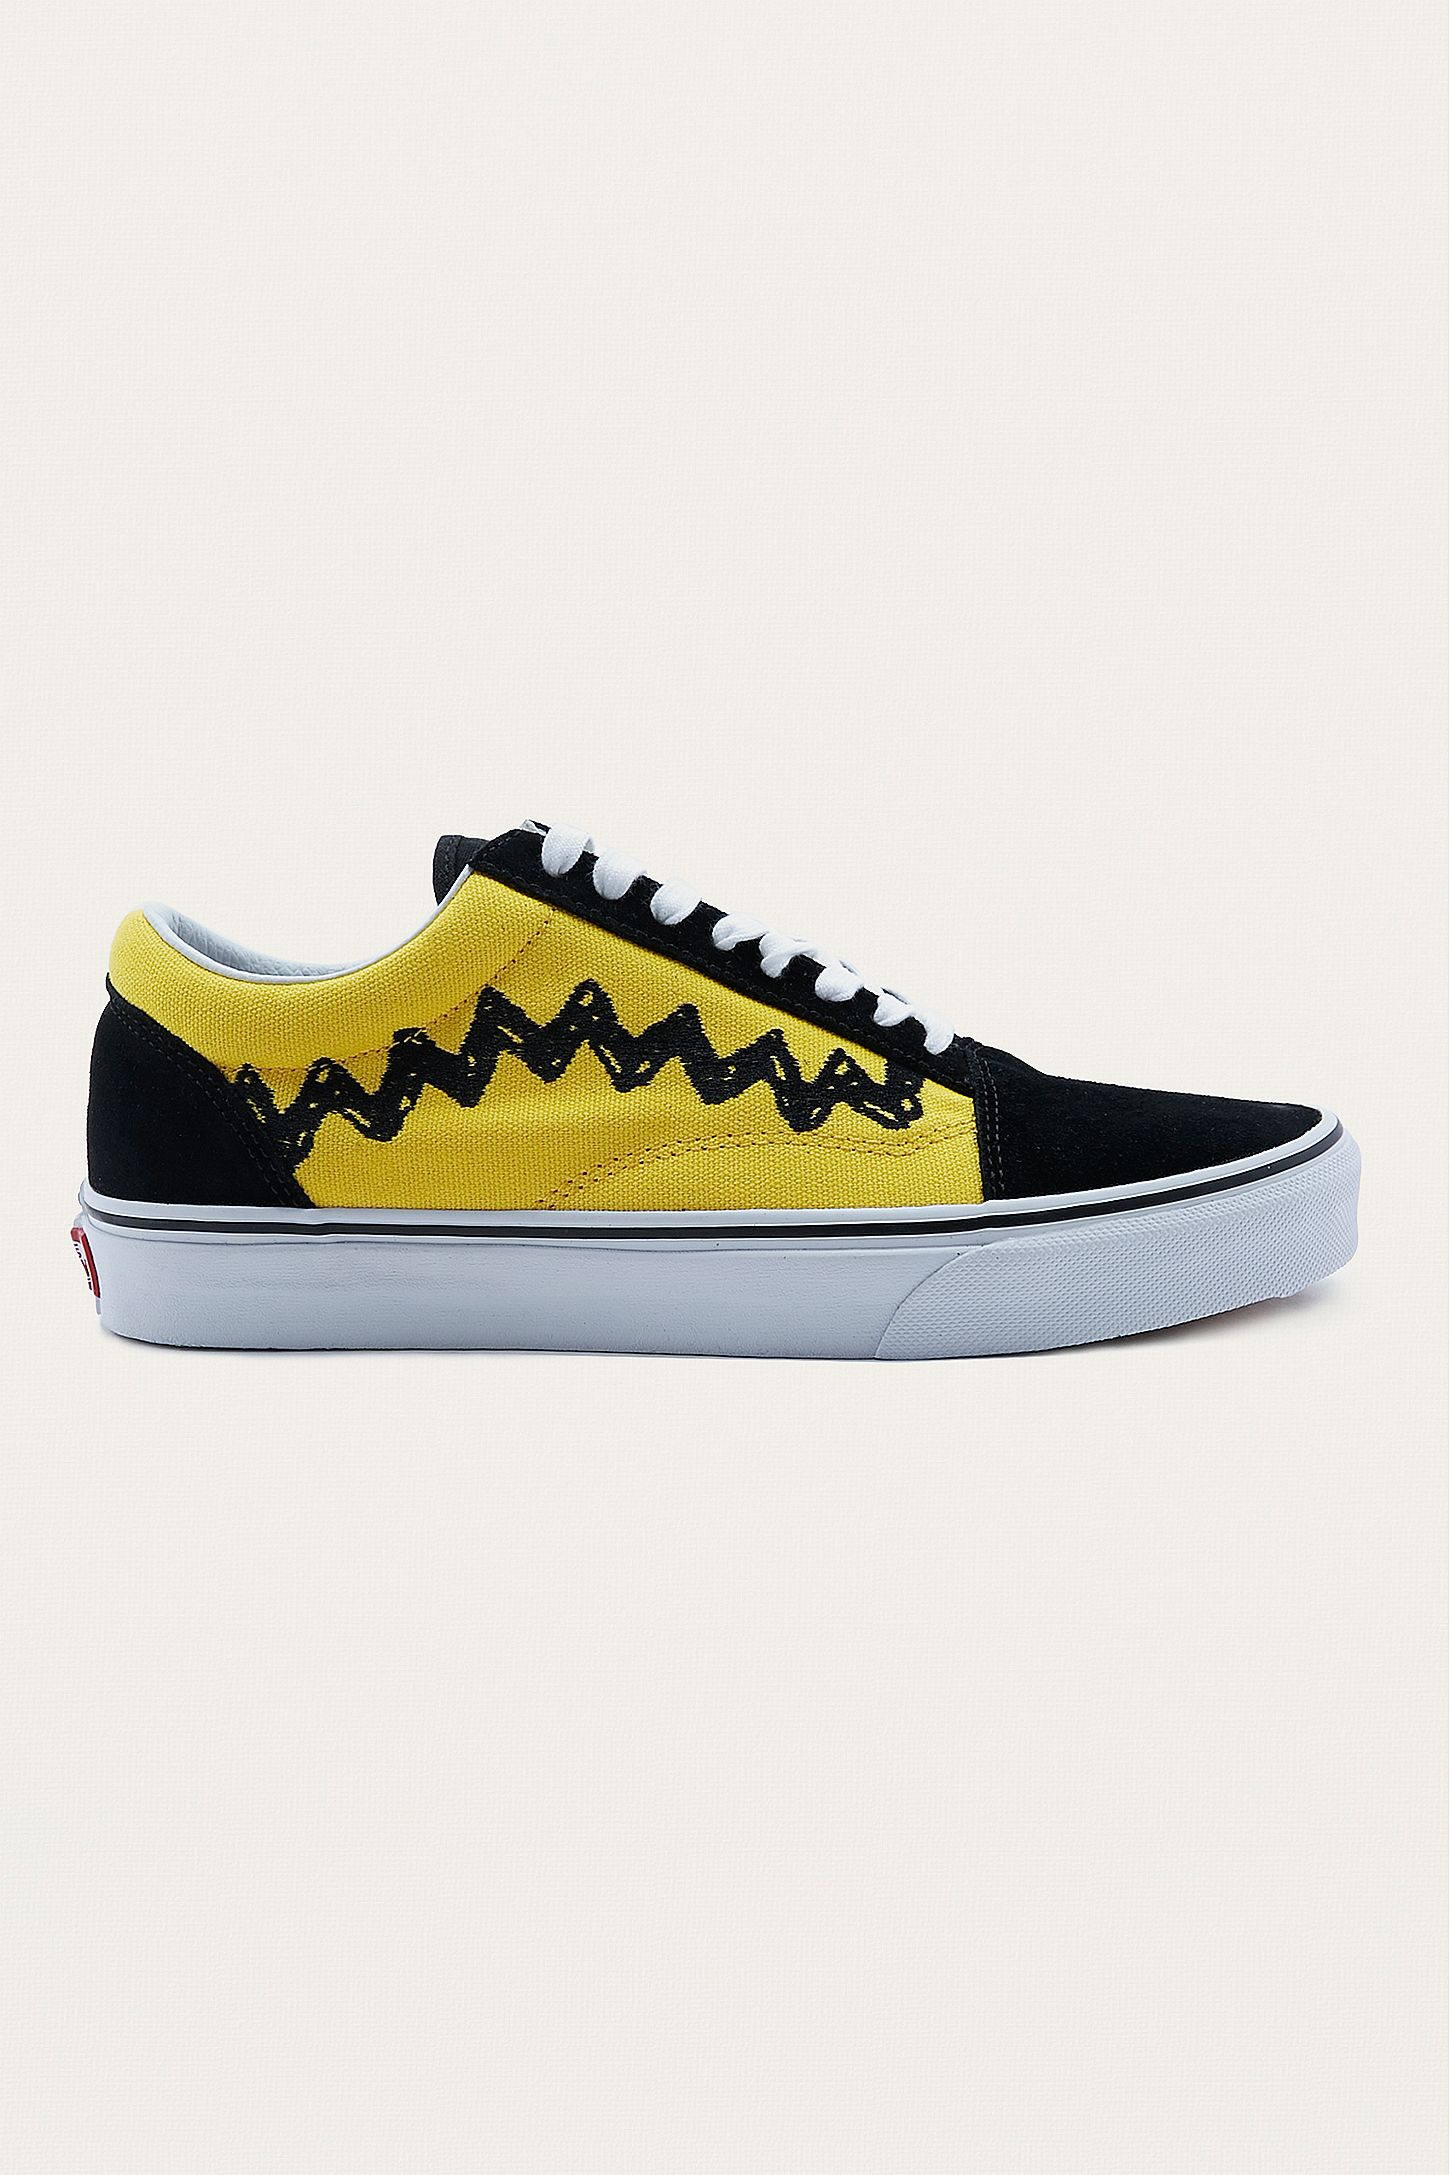 fc576837fa Vans X Peanuts Charlie Brown Old Skool Trainers. Click on image to zoom.  Hover to zoom. Double Tap to Zoom